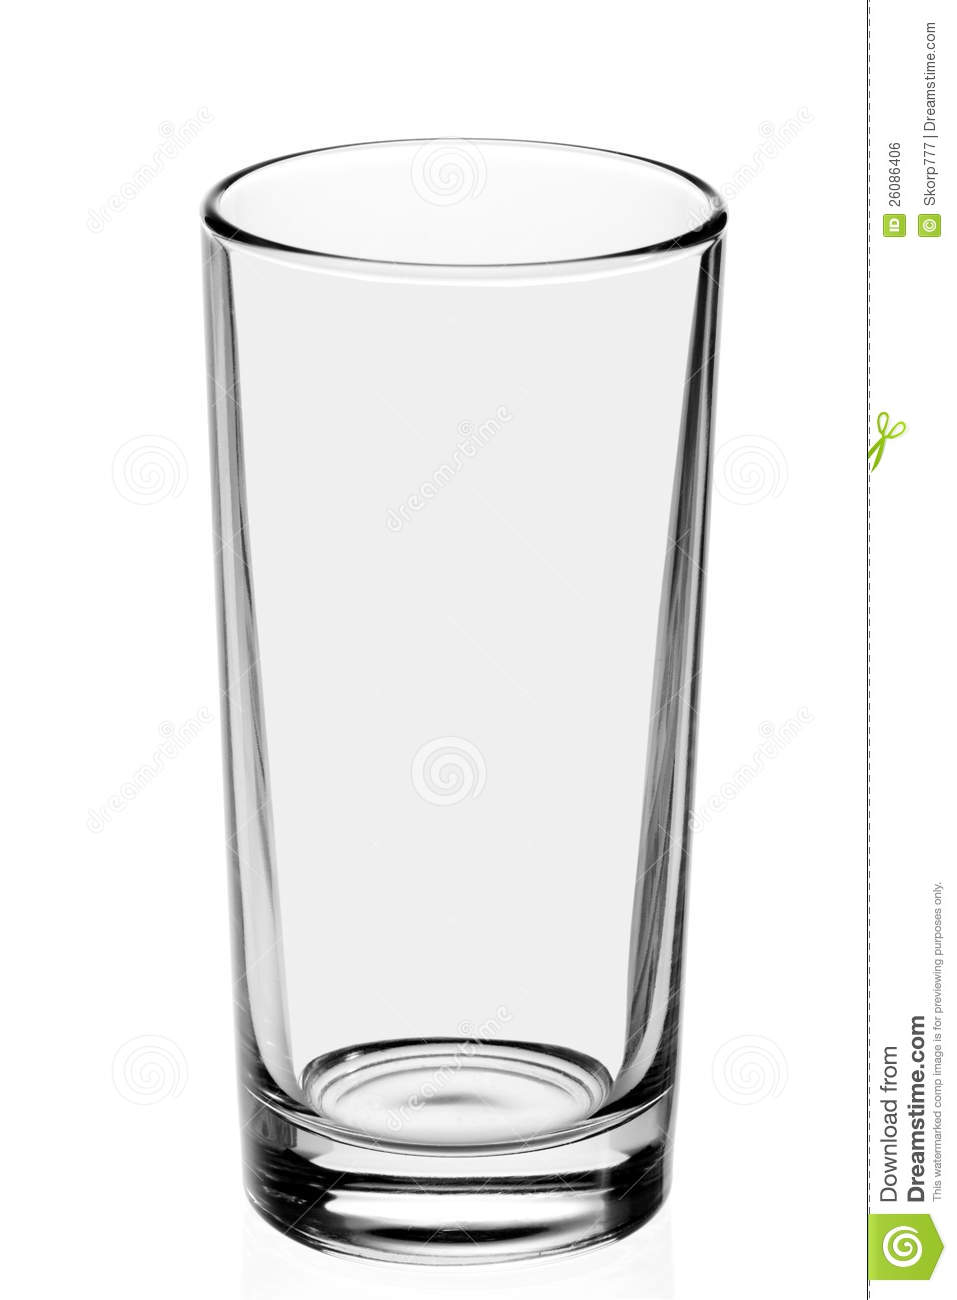 Empty Glass On The White.